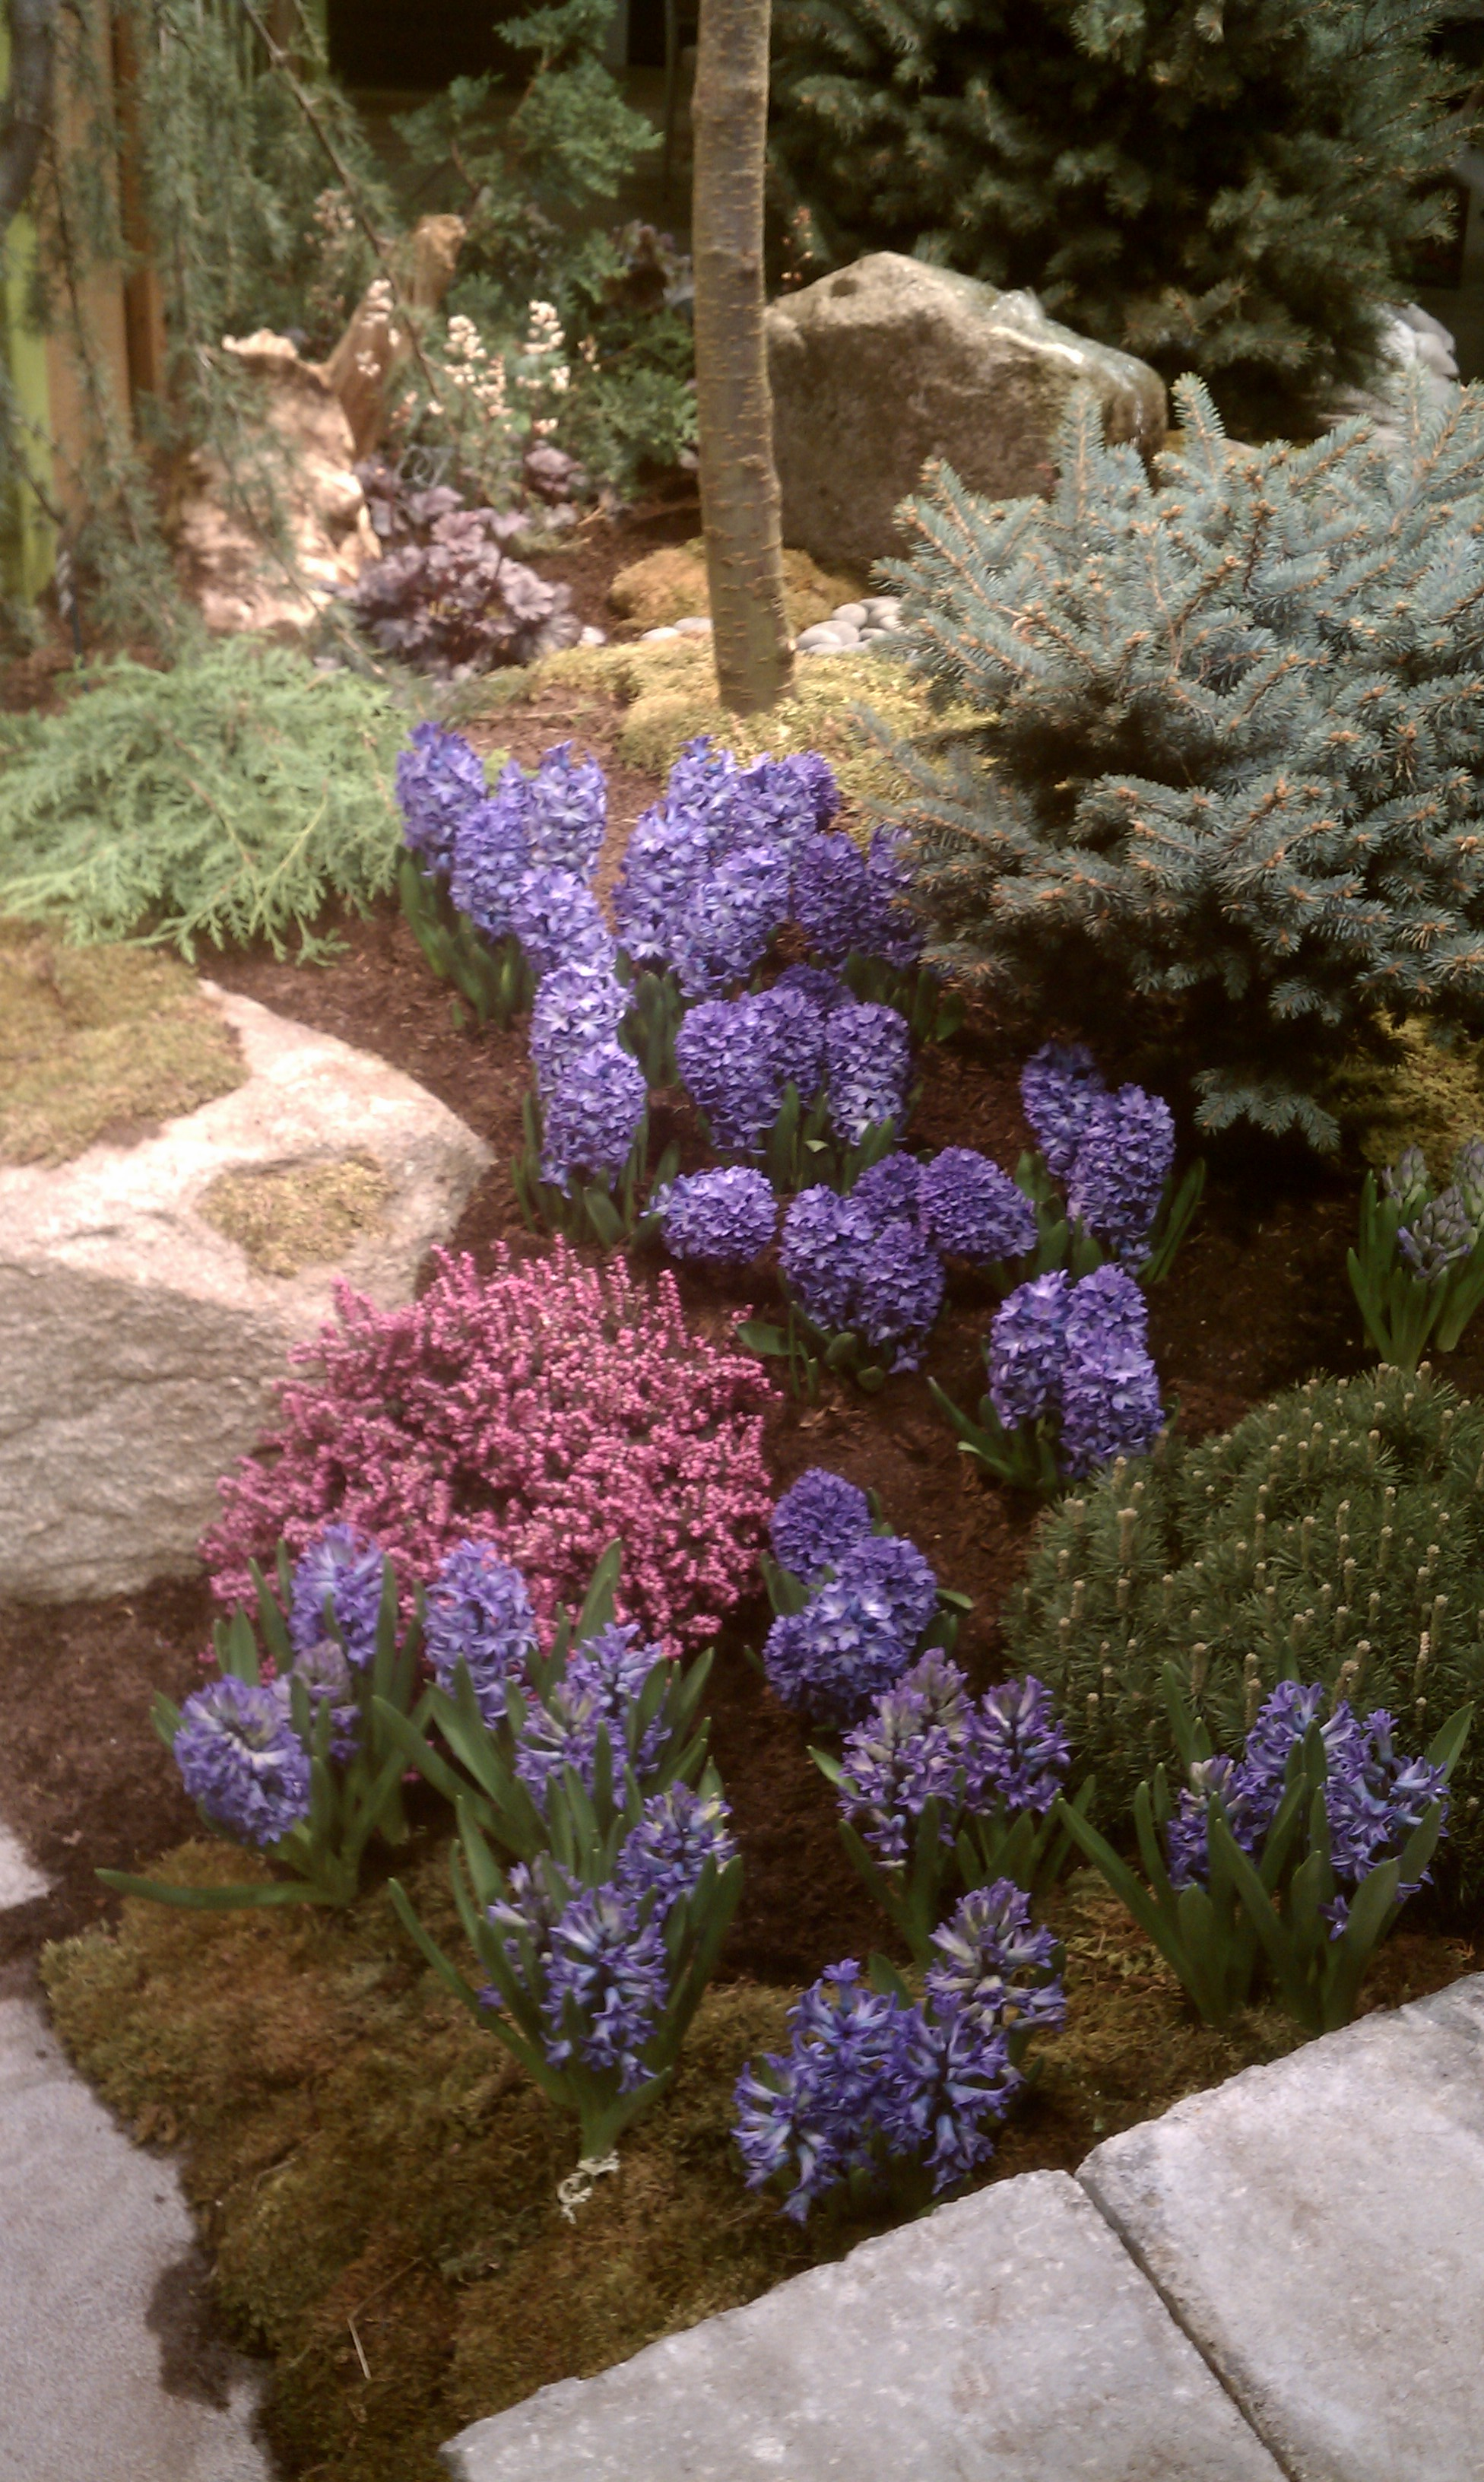 Boston Flower Show Colorful Aromatic Surprising City Garden Ideas